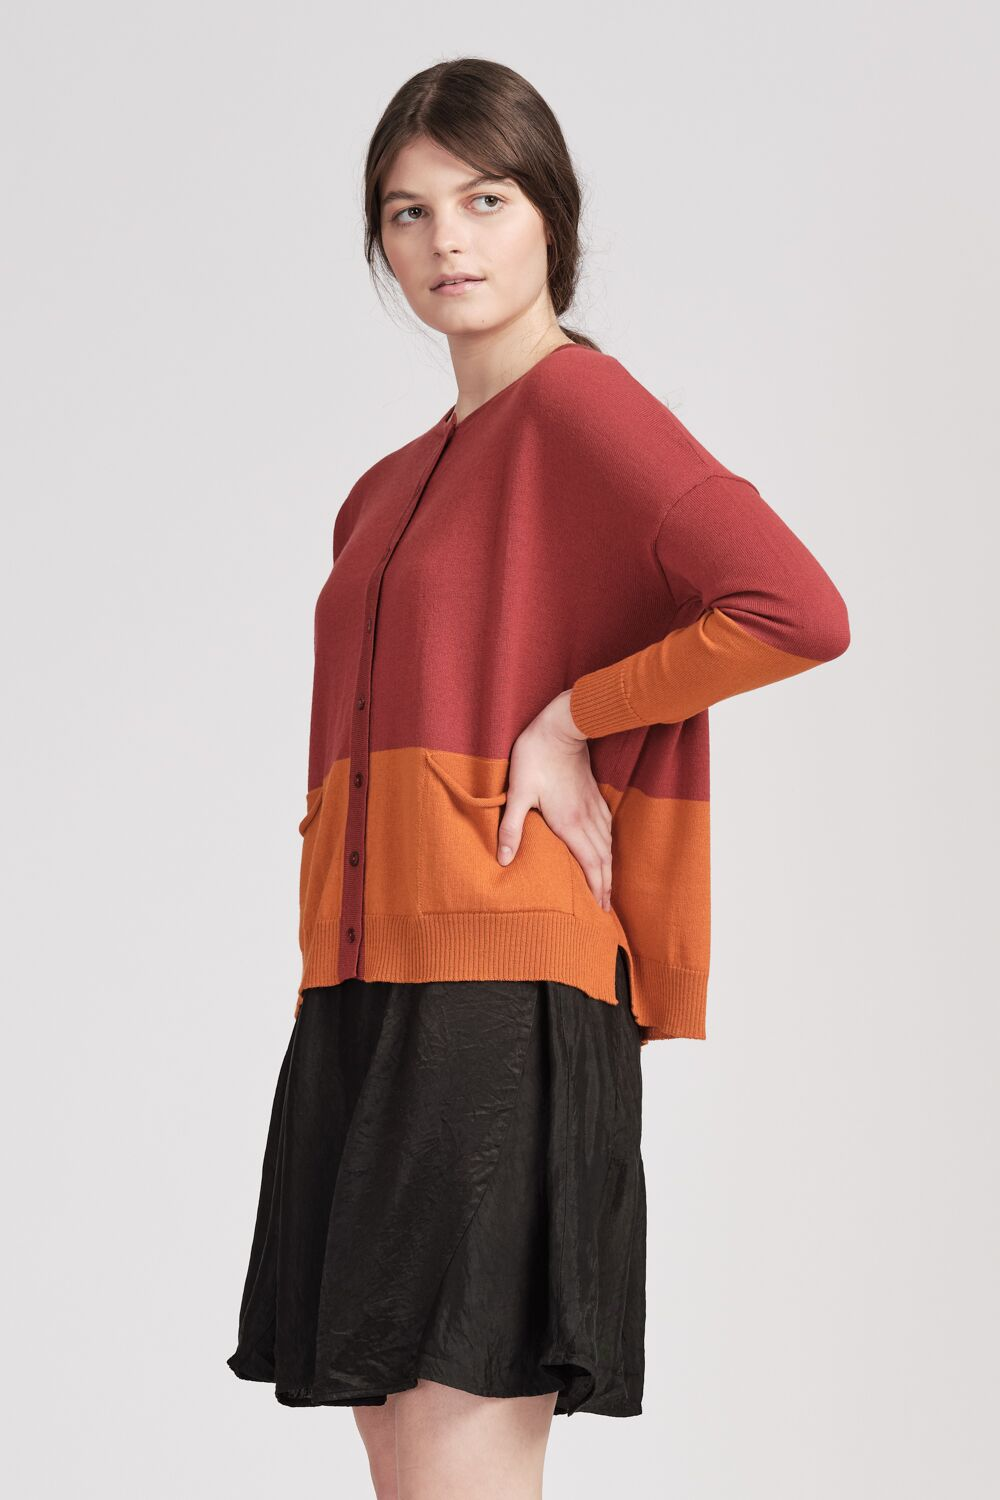 From Meg Cardi Burnt Orange/Raspberry | Shop online | NZ Made knitwear